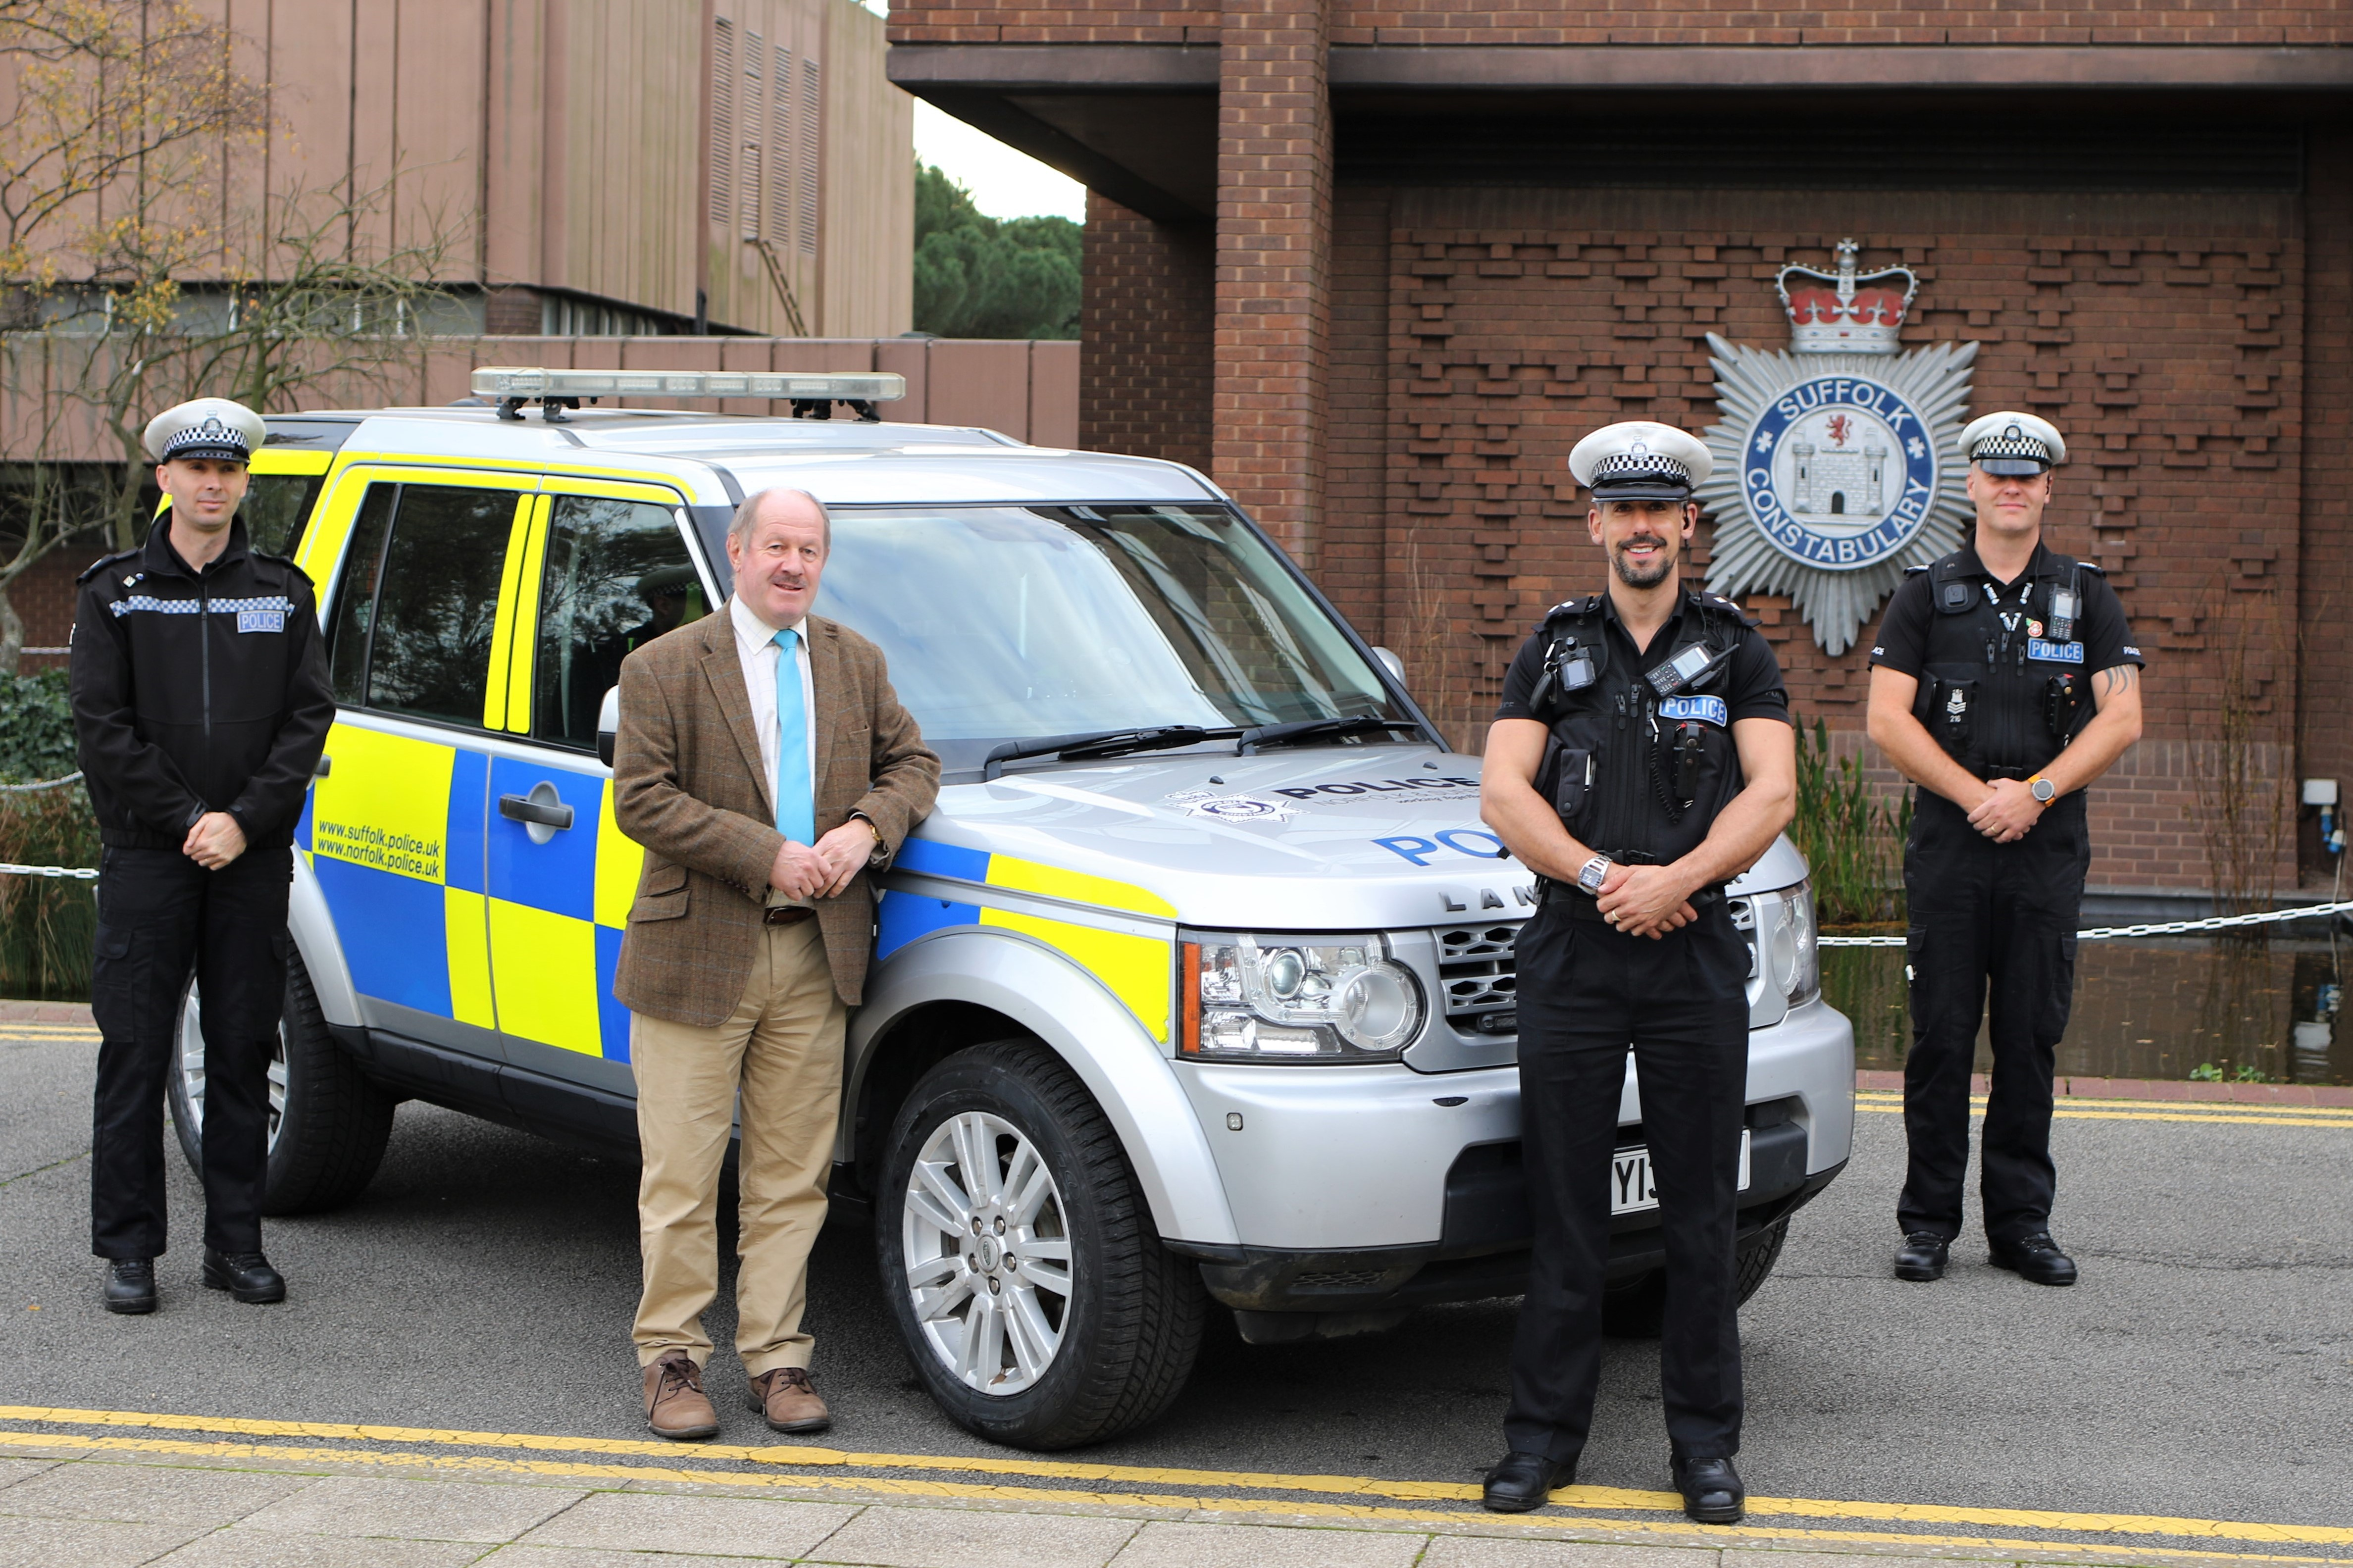 Suffolk Police Commercial Vehicle Unit